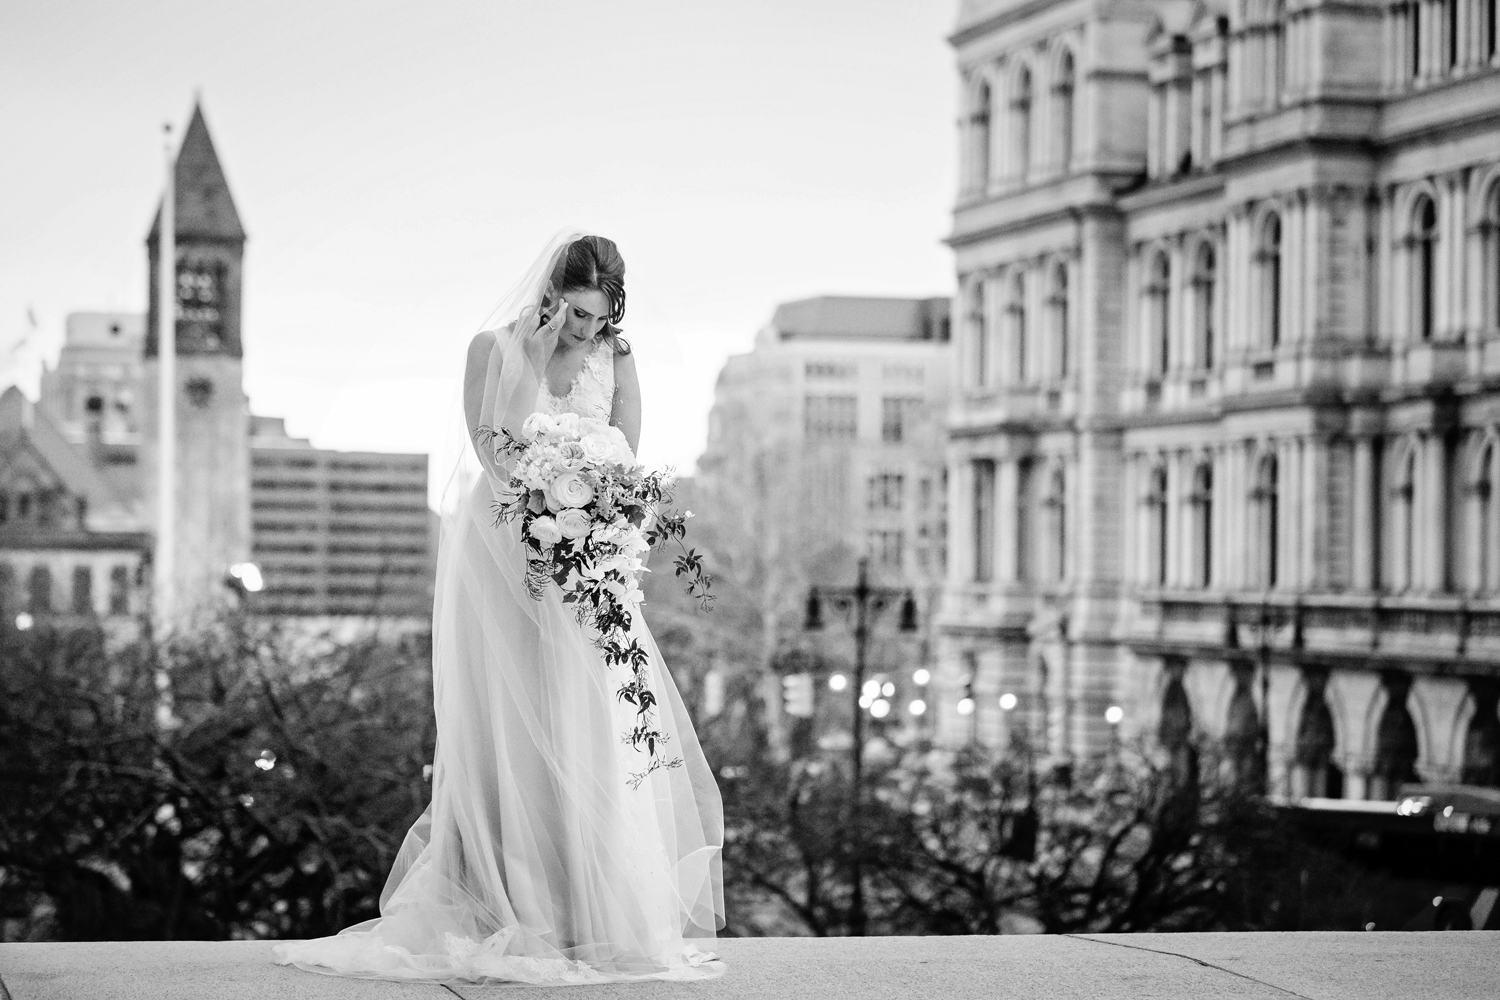 albany ny wedding photographer20.jpg